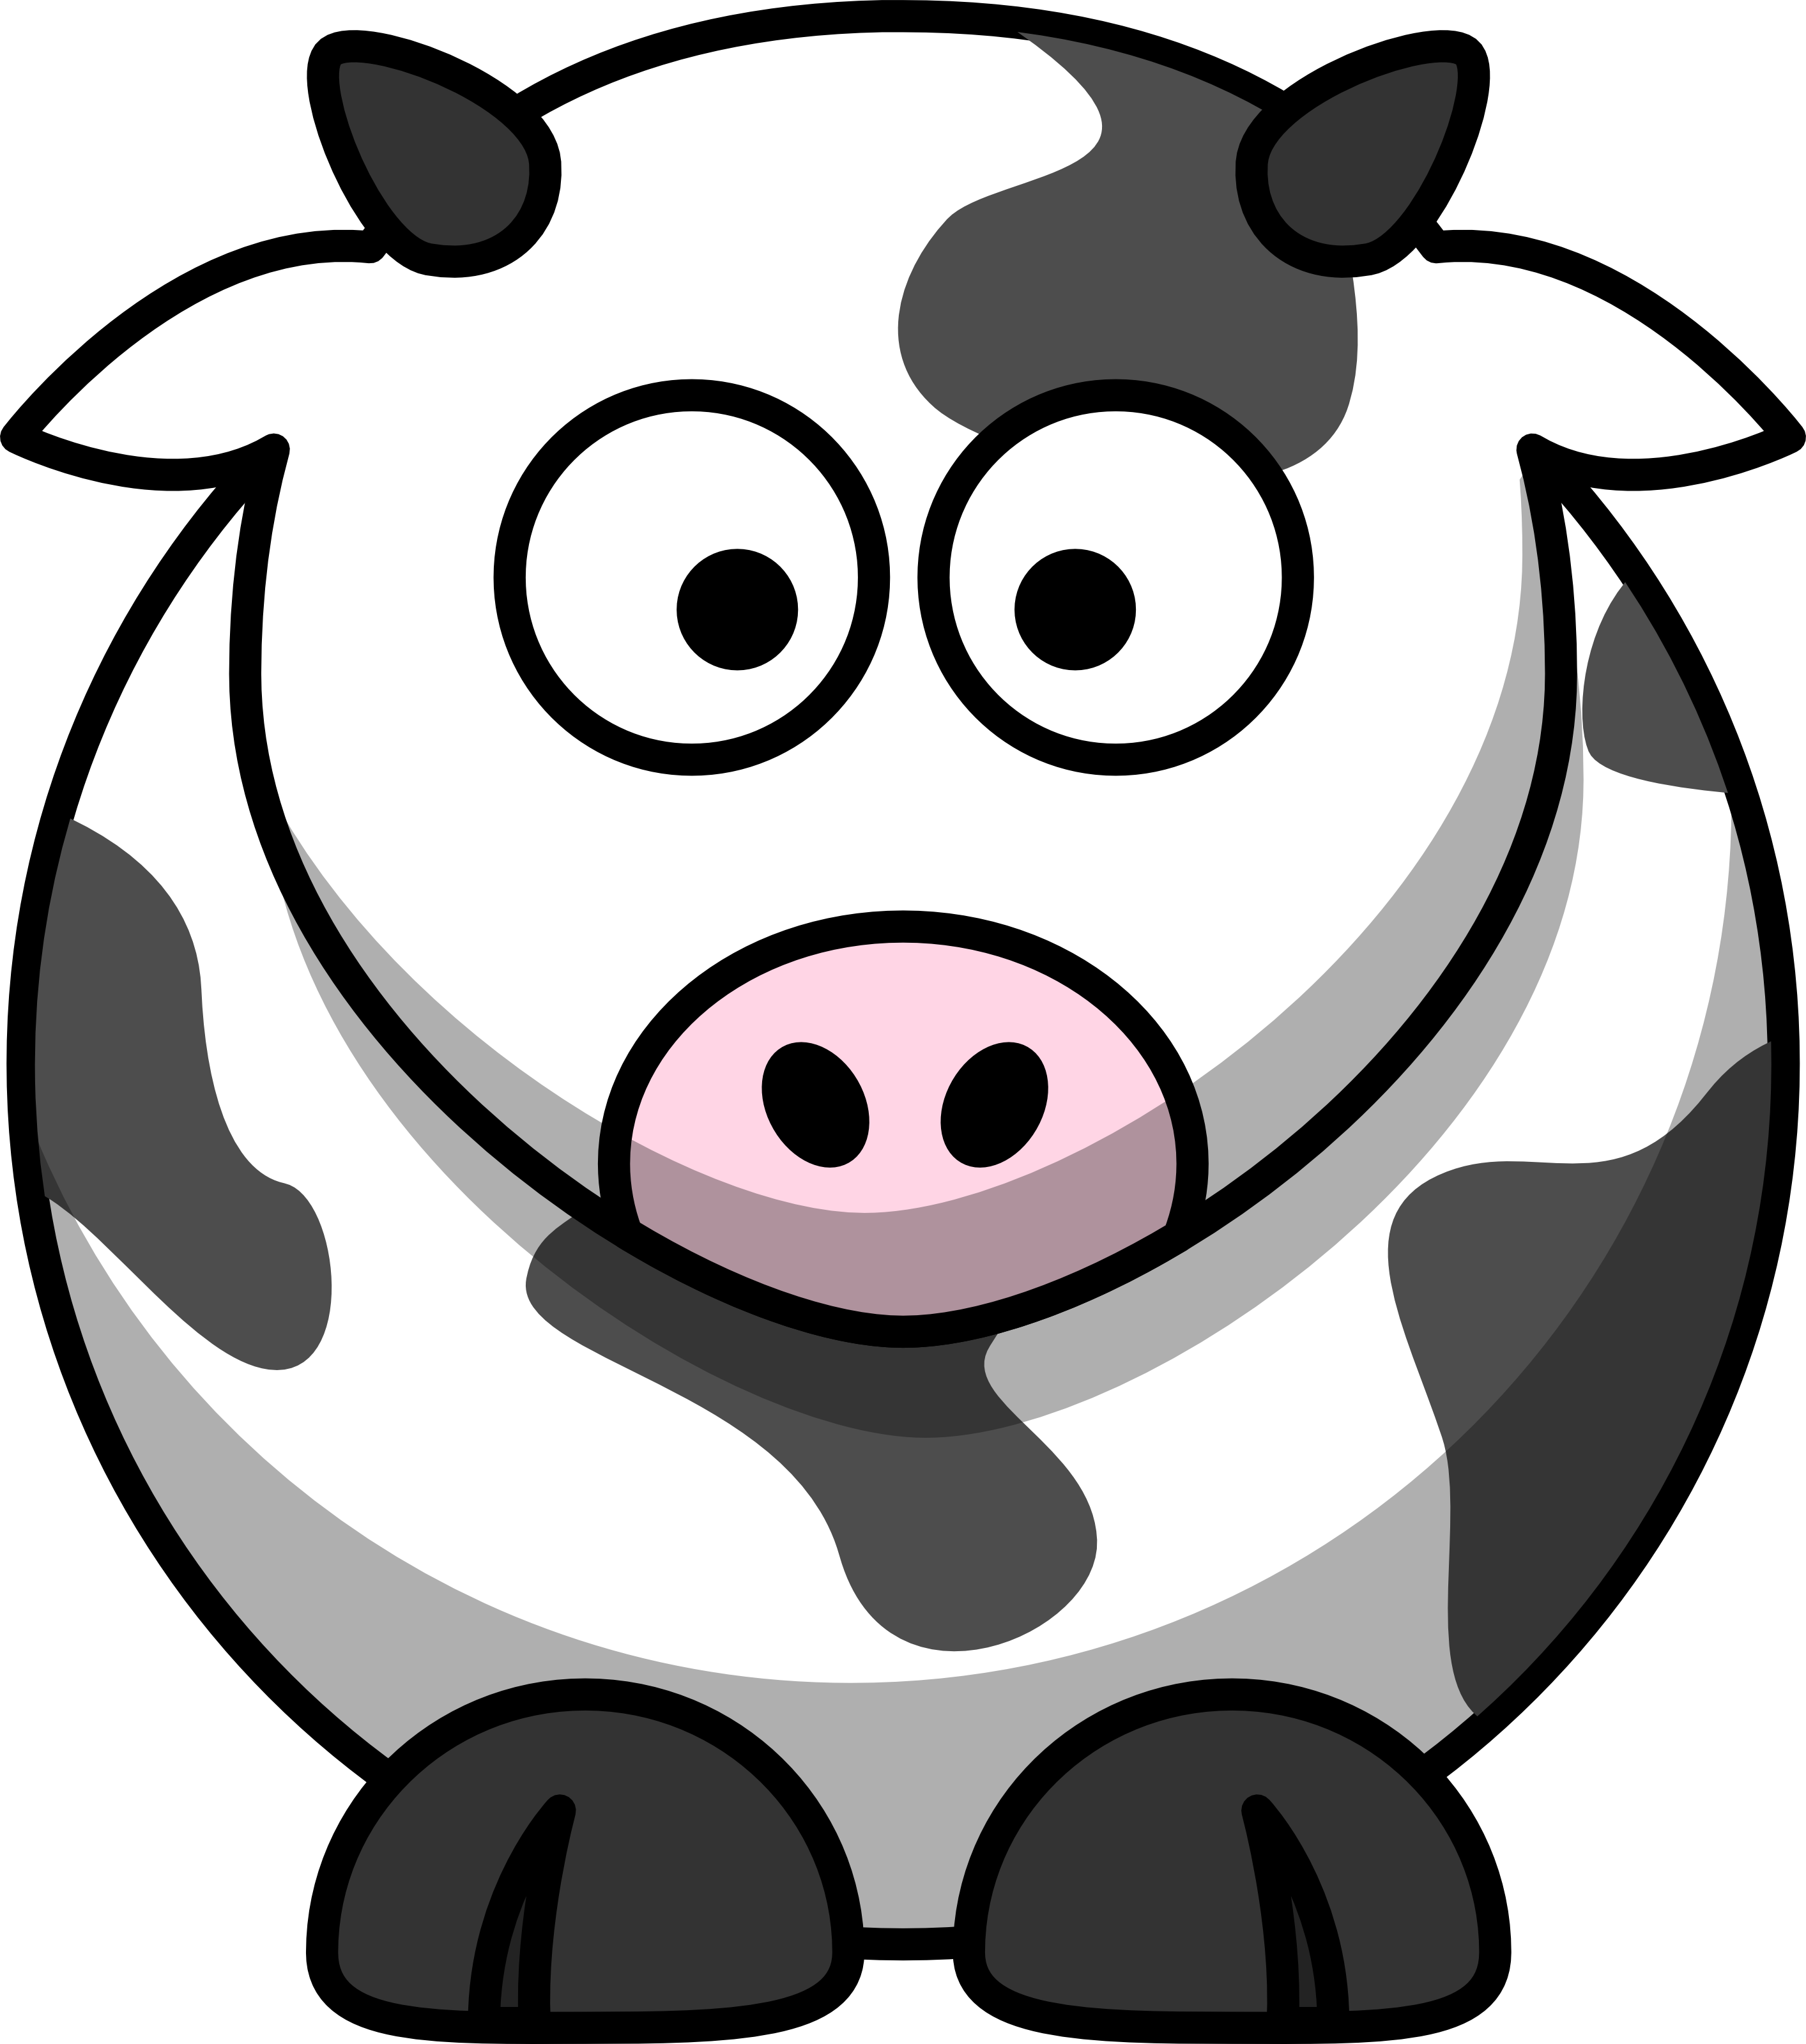 Free Cartoon Cow Clip Art.